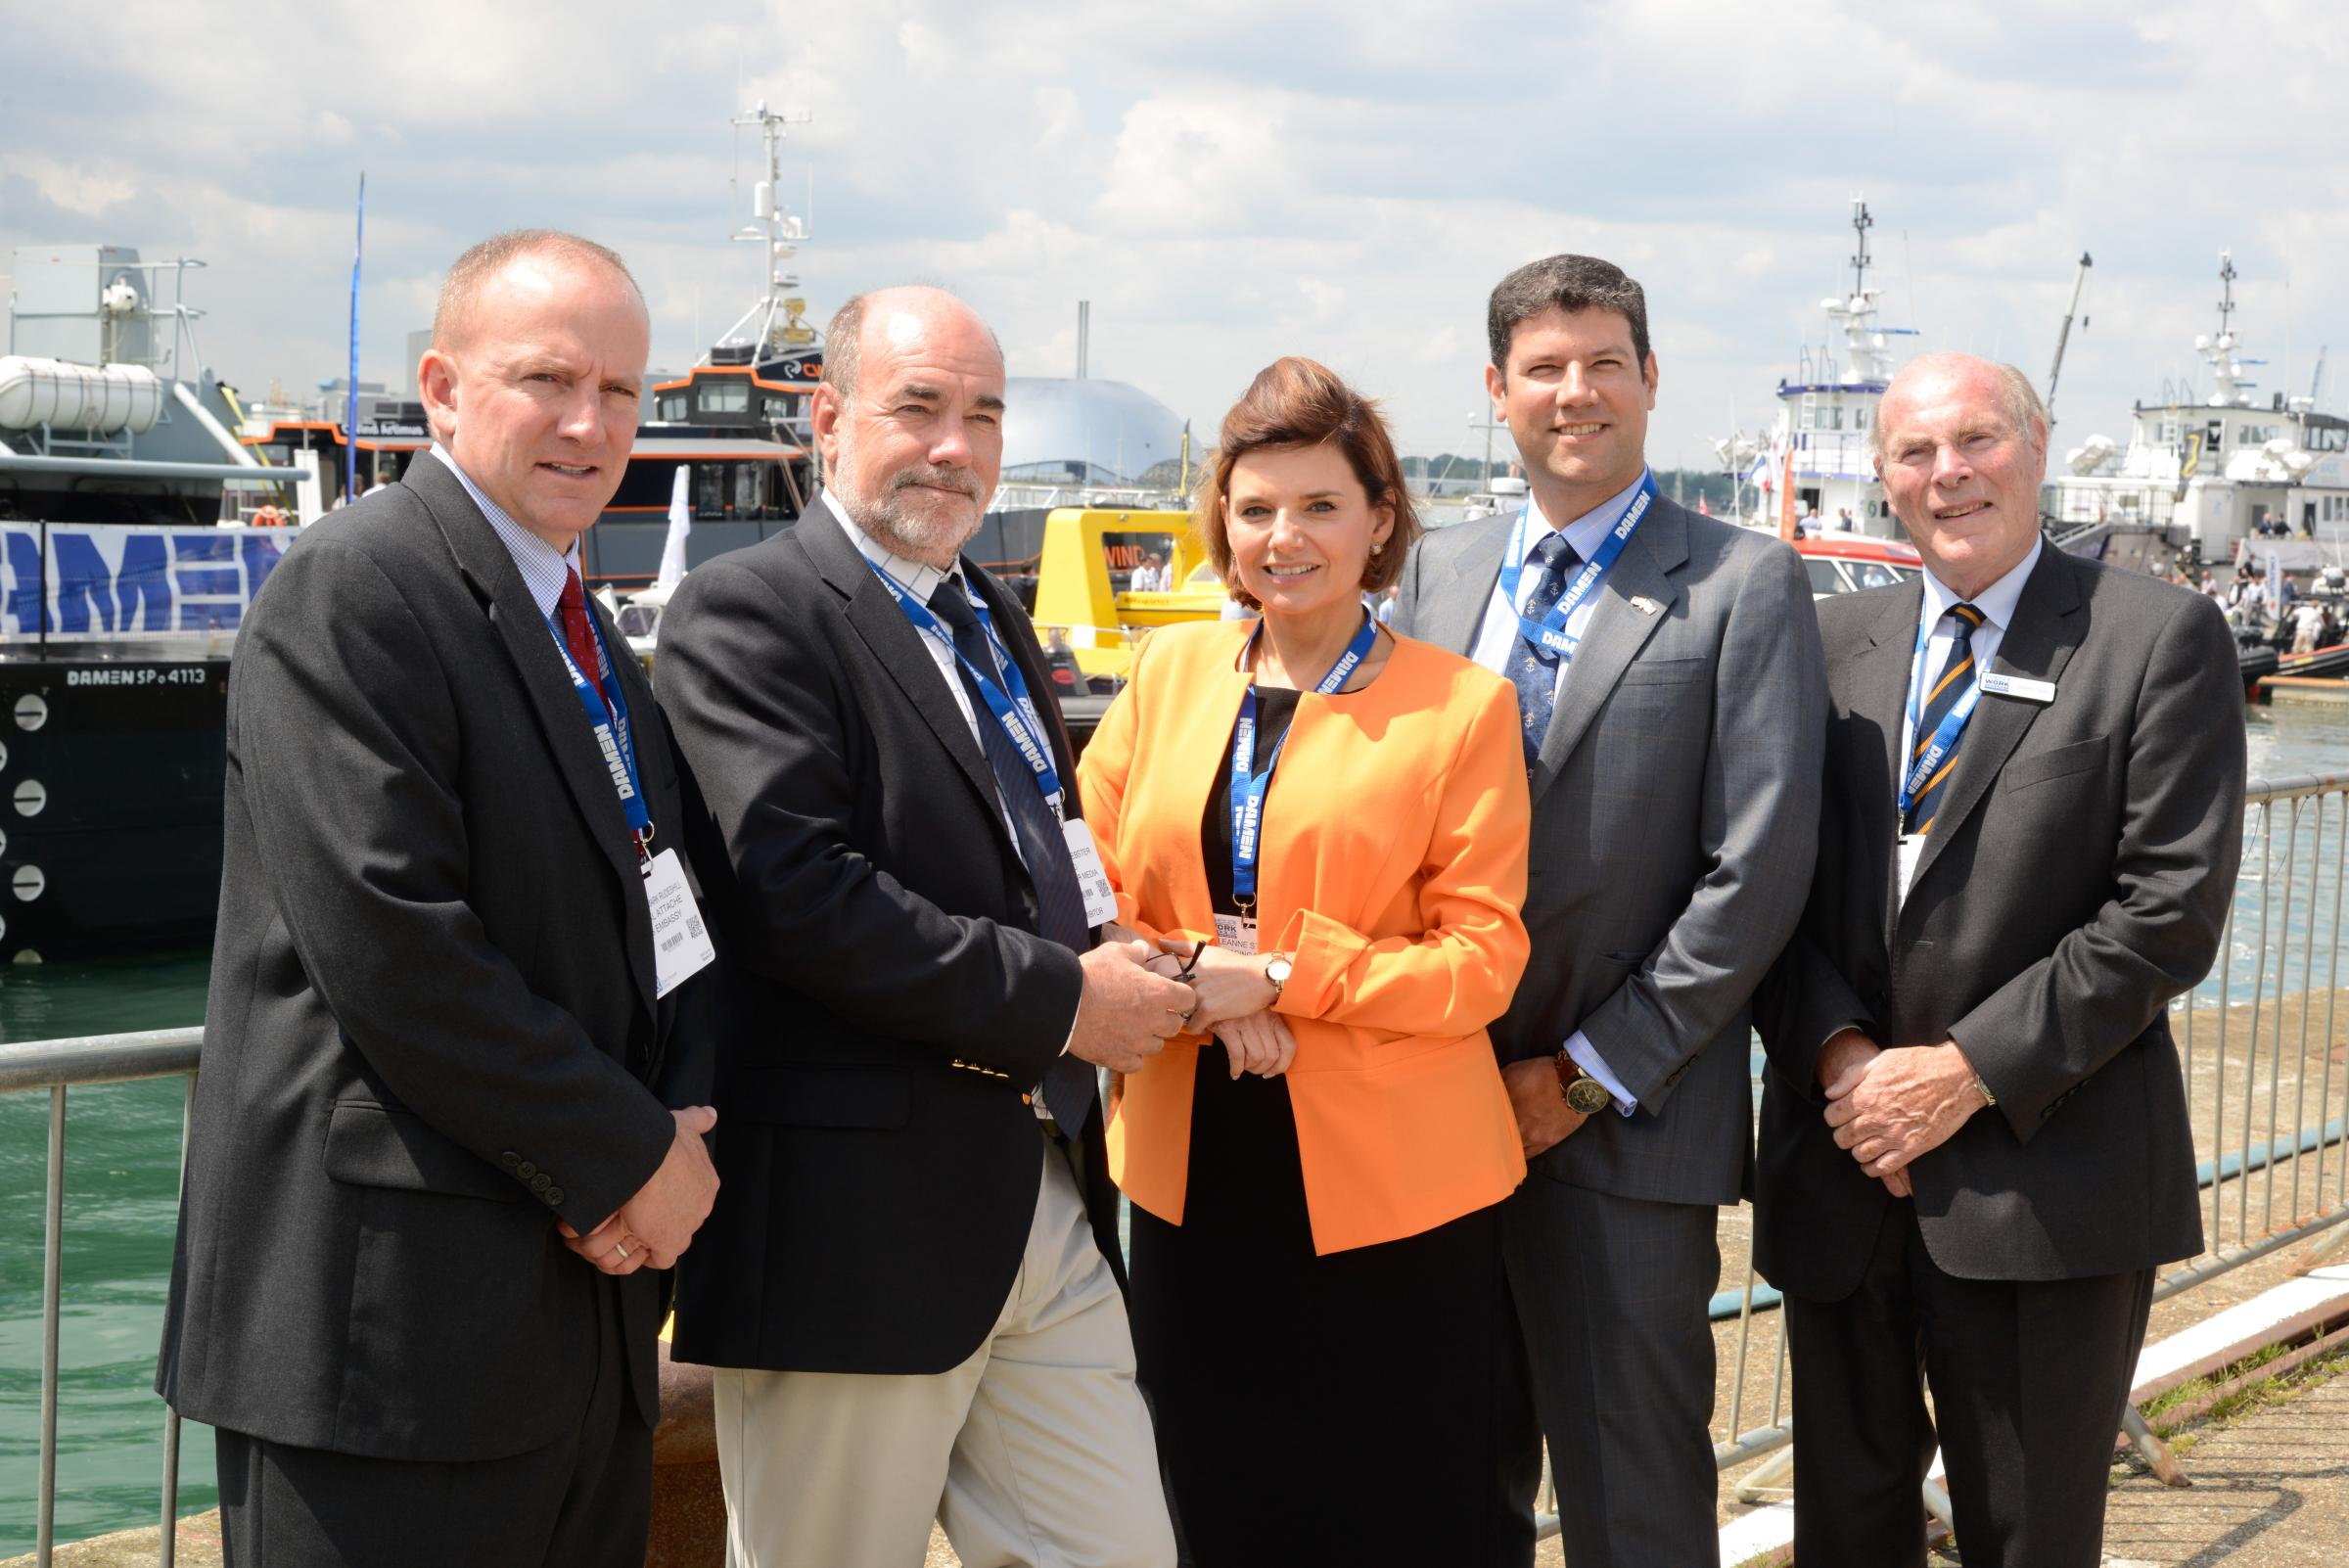 Seawork 2015 welcomed international VIP delegations from the US, Brazil, China and Italy